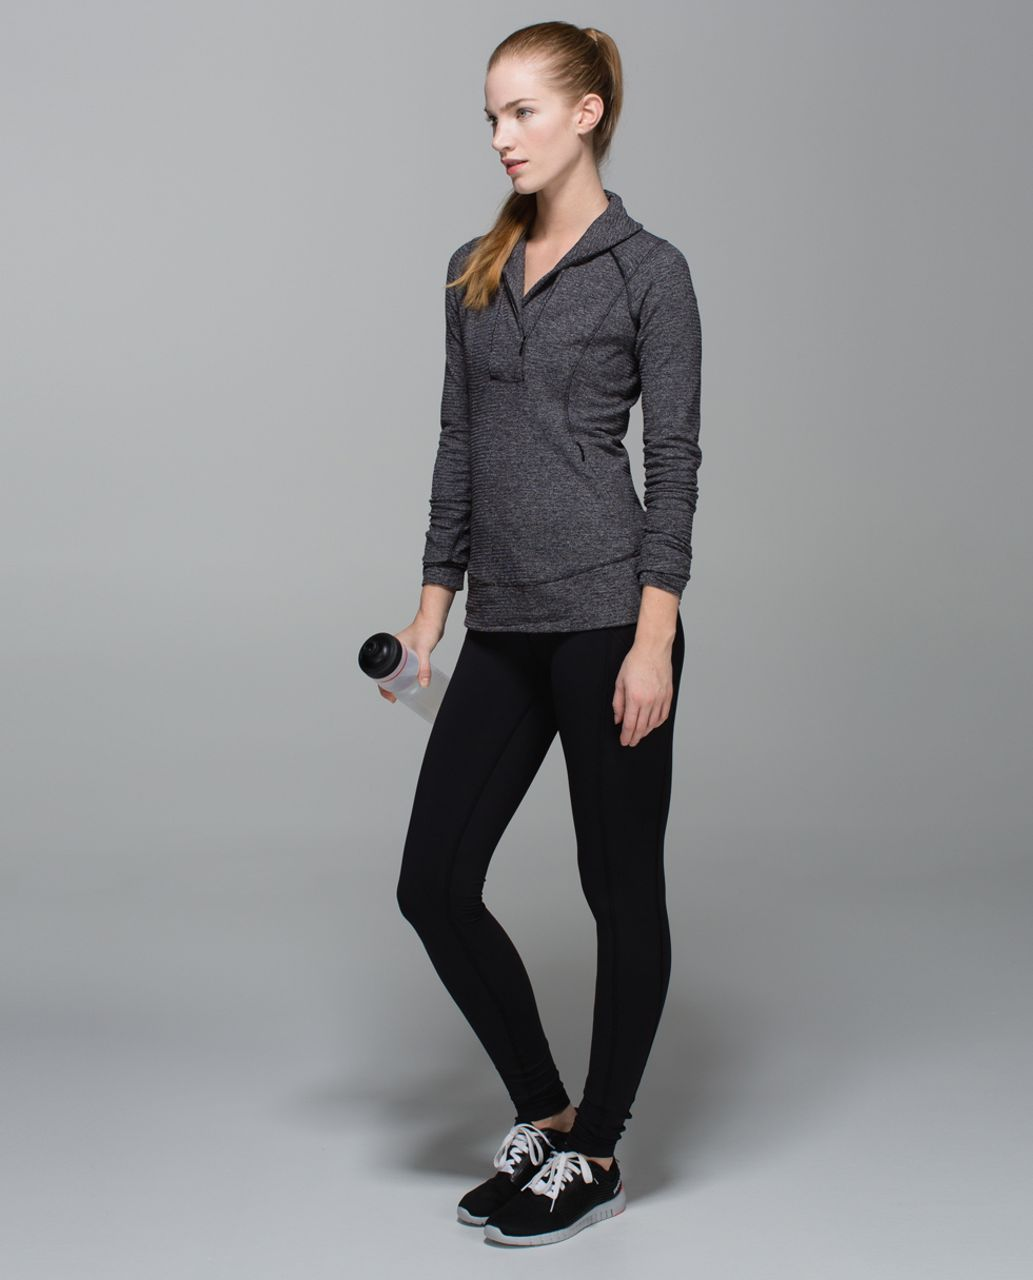 Lululemon Speed Tight II (Brushed) - Black / Wi14 Quilt 24